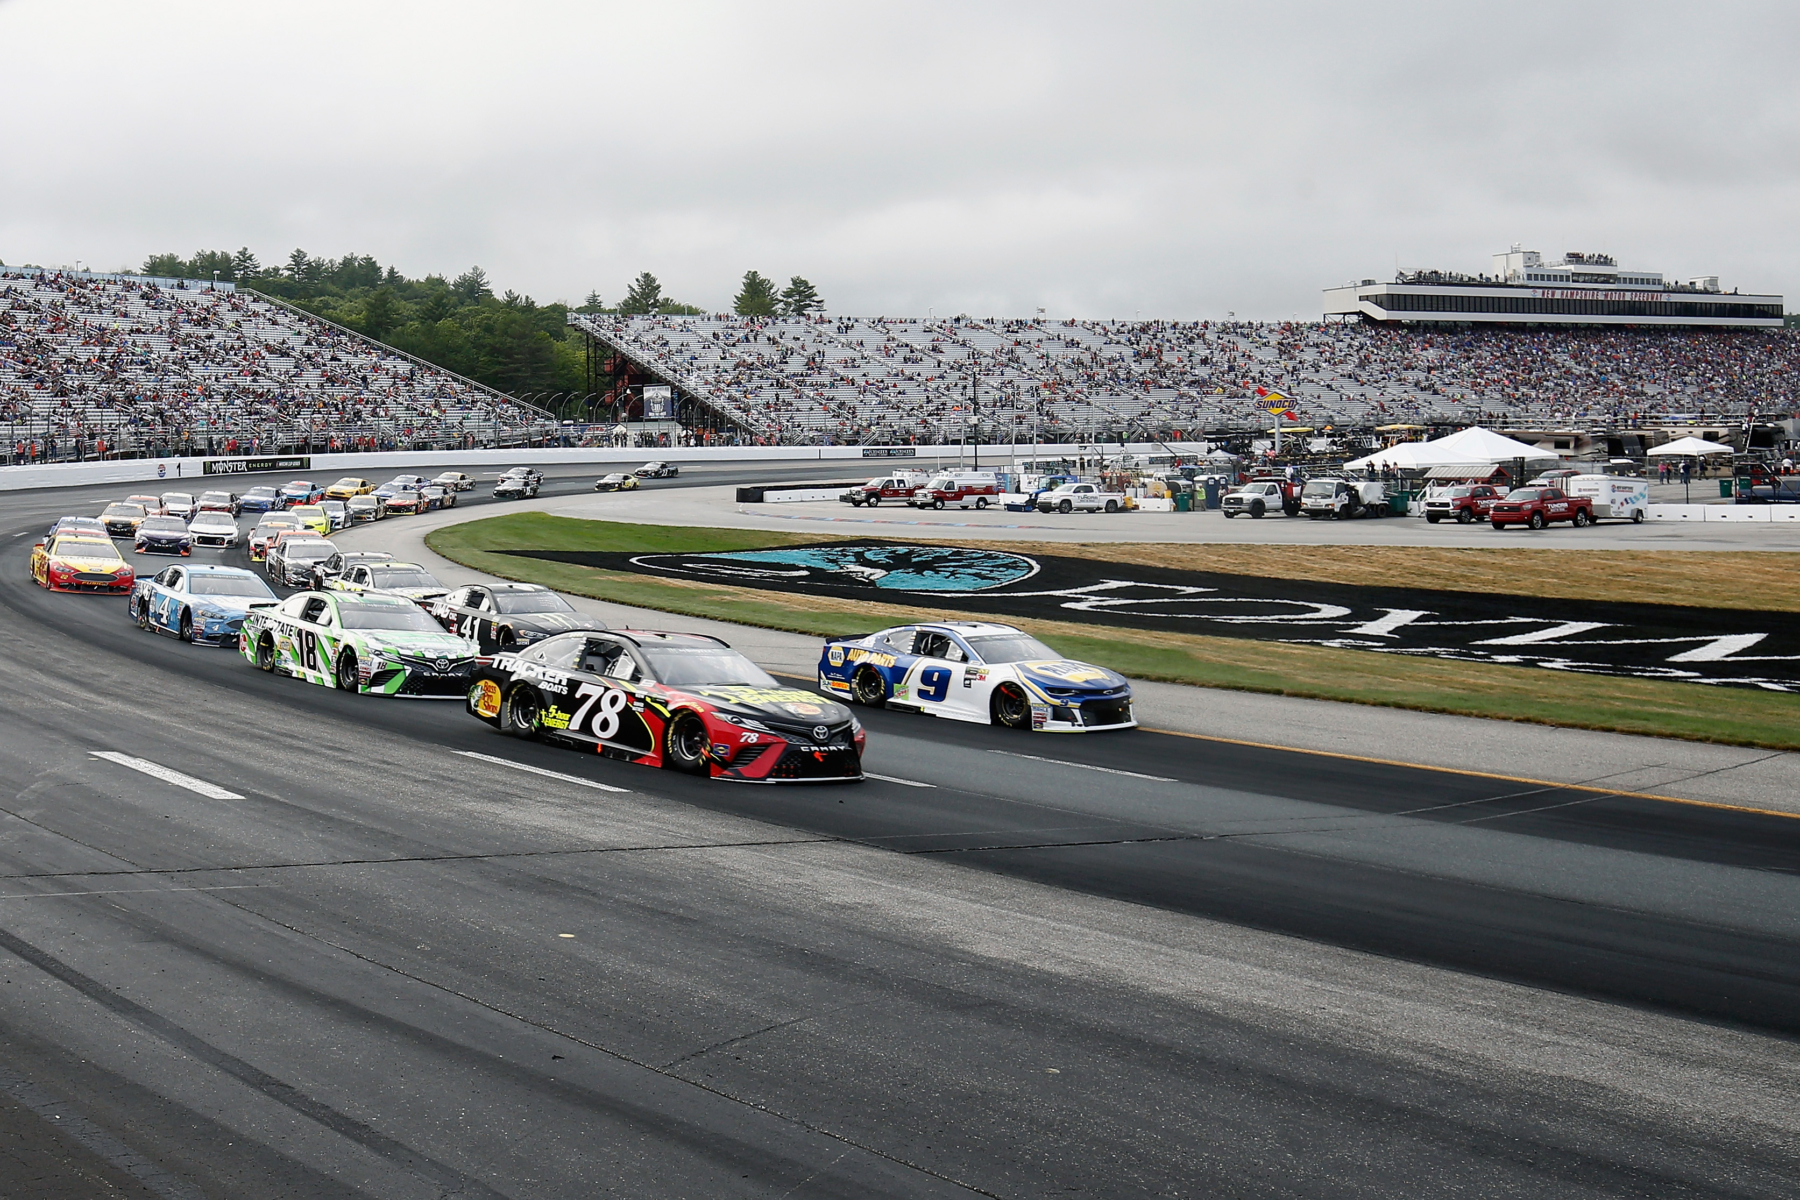 Martin Truex Jr, Chase Elliott, Kyle Busch and Kevin Harvick at New Hampshire Motor Speedway